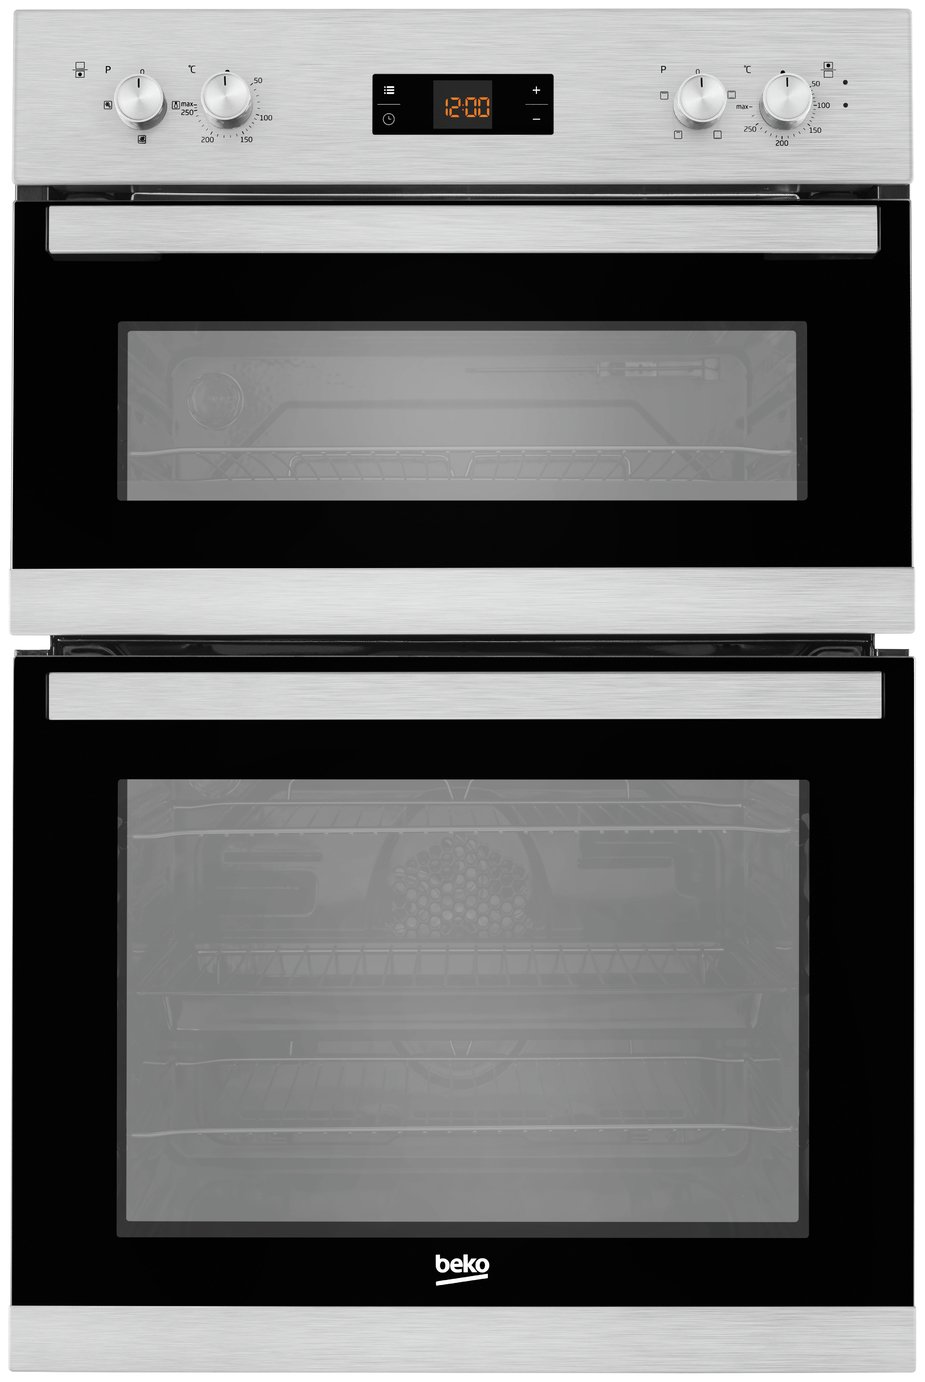 Beko BADF22300X Double Built-In Oven - Stainless Steel from beko